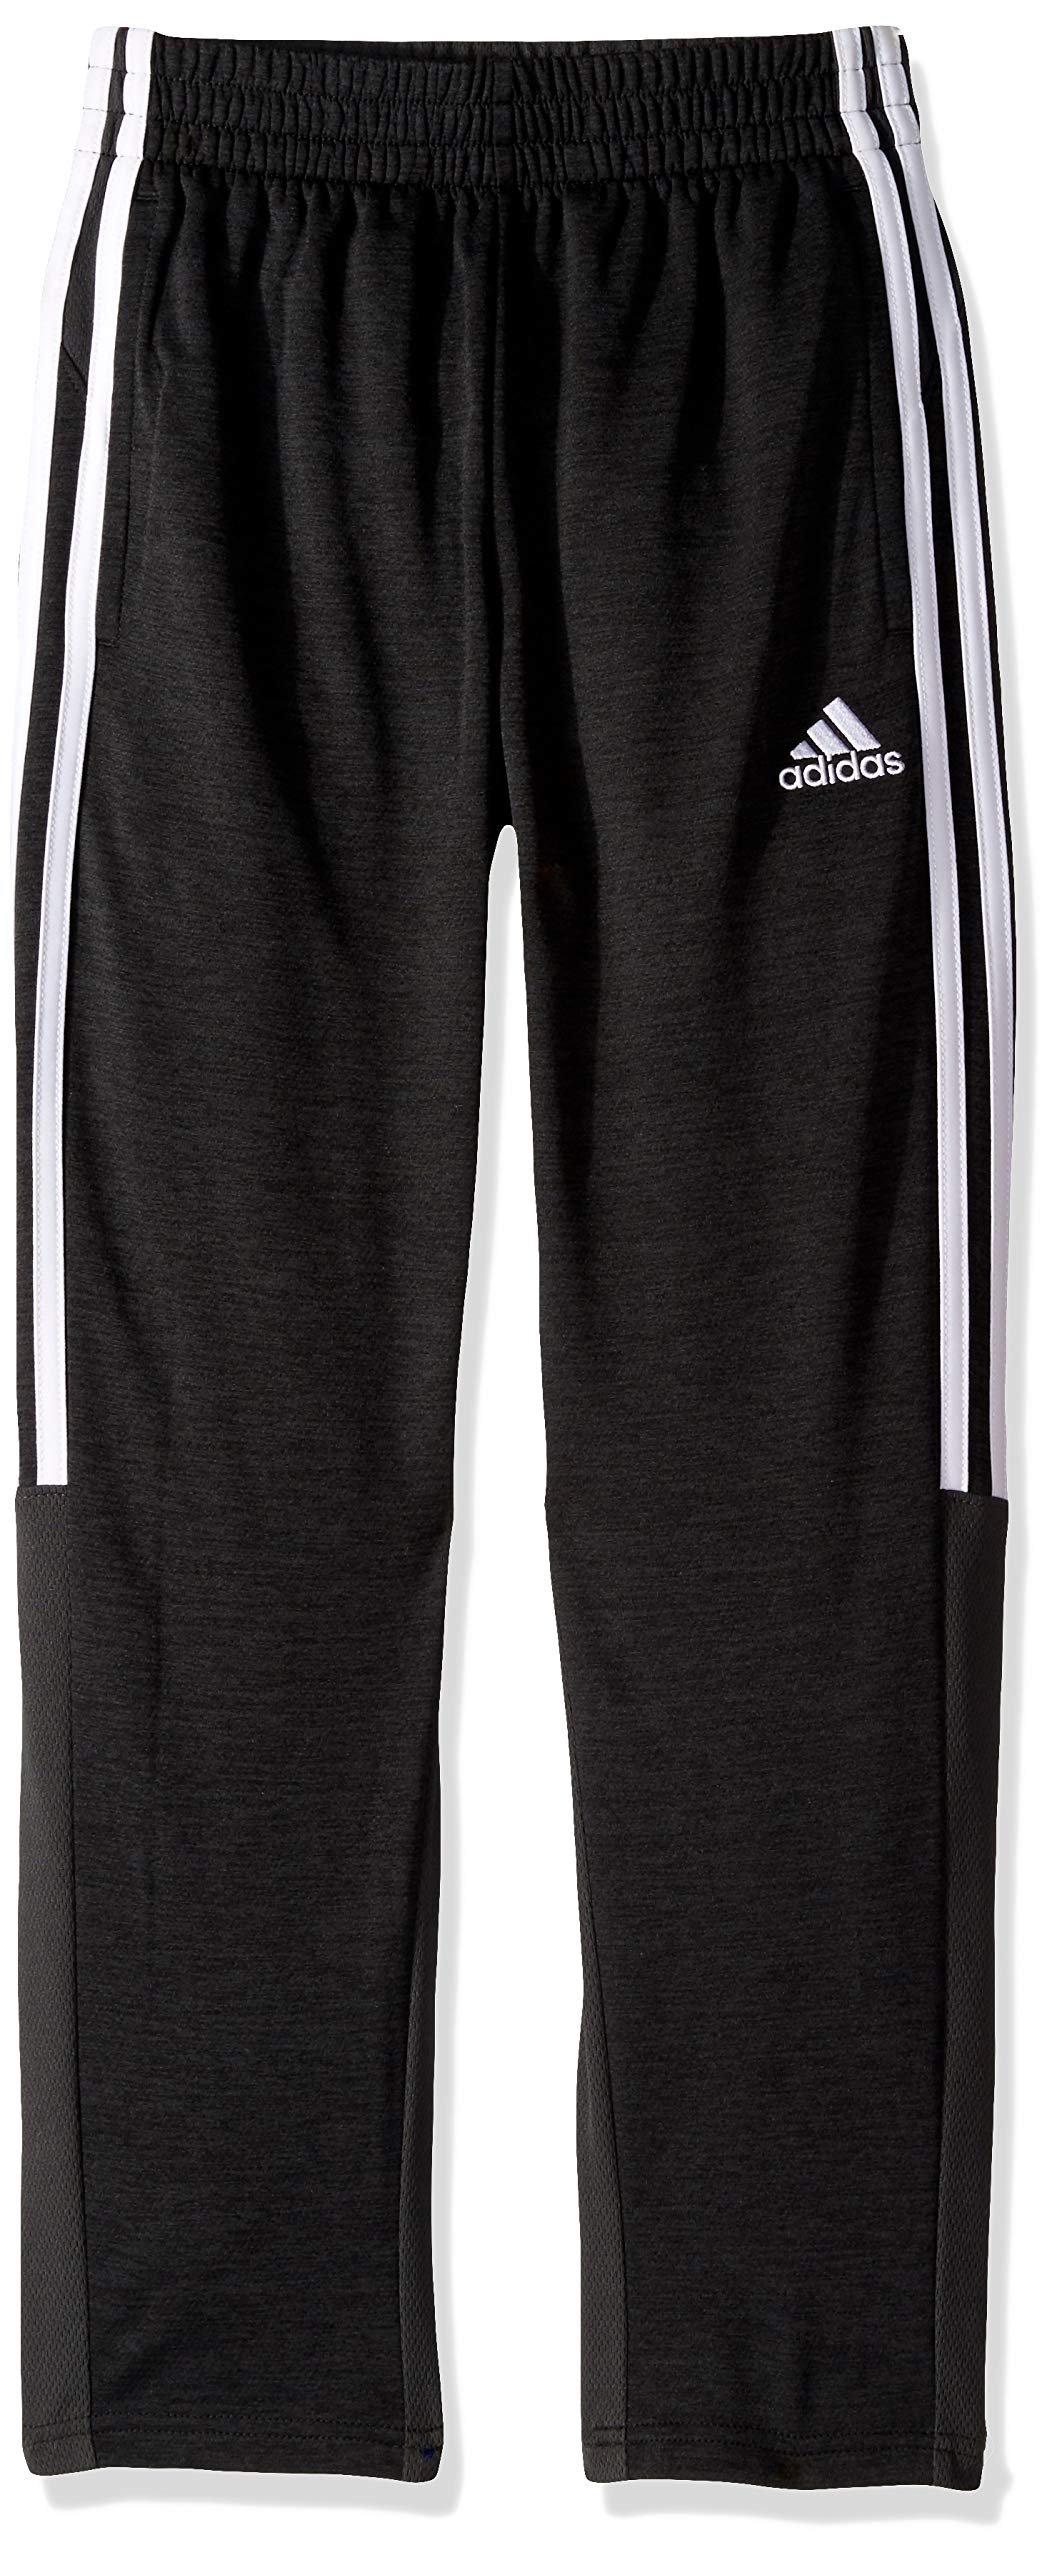 adidas Boys' Big Stay Cool Climalite Athletic Sport Pant, Black Heather, S (8) by adidas